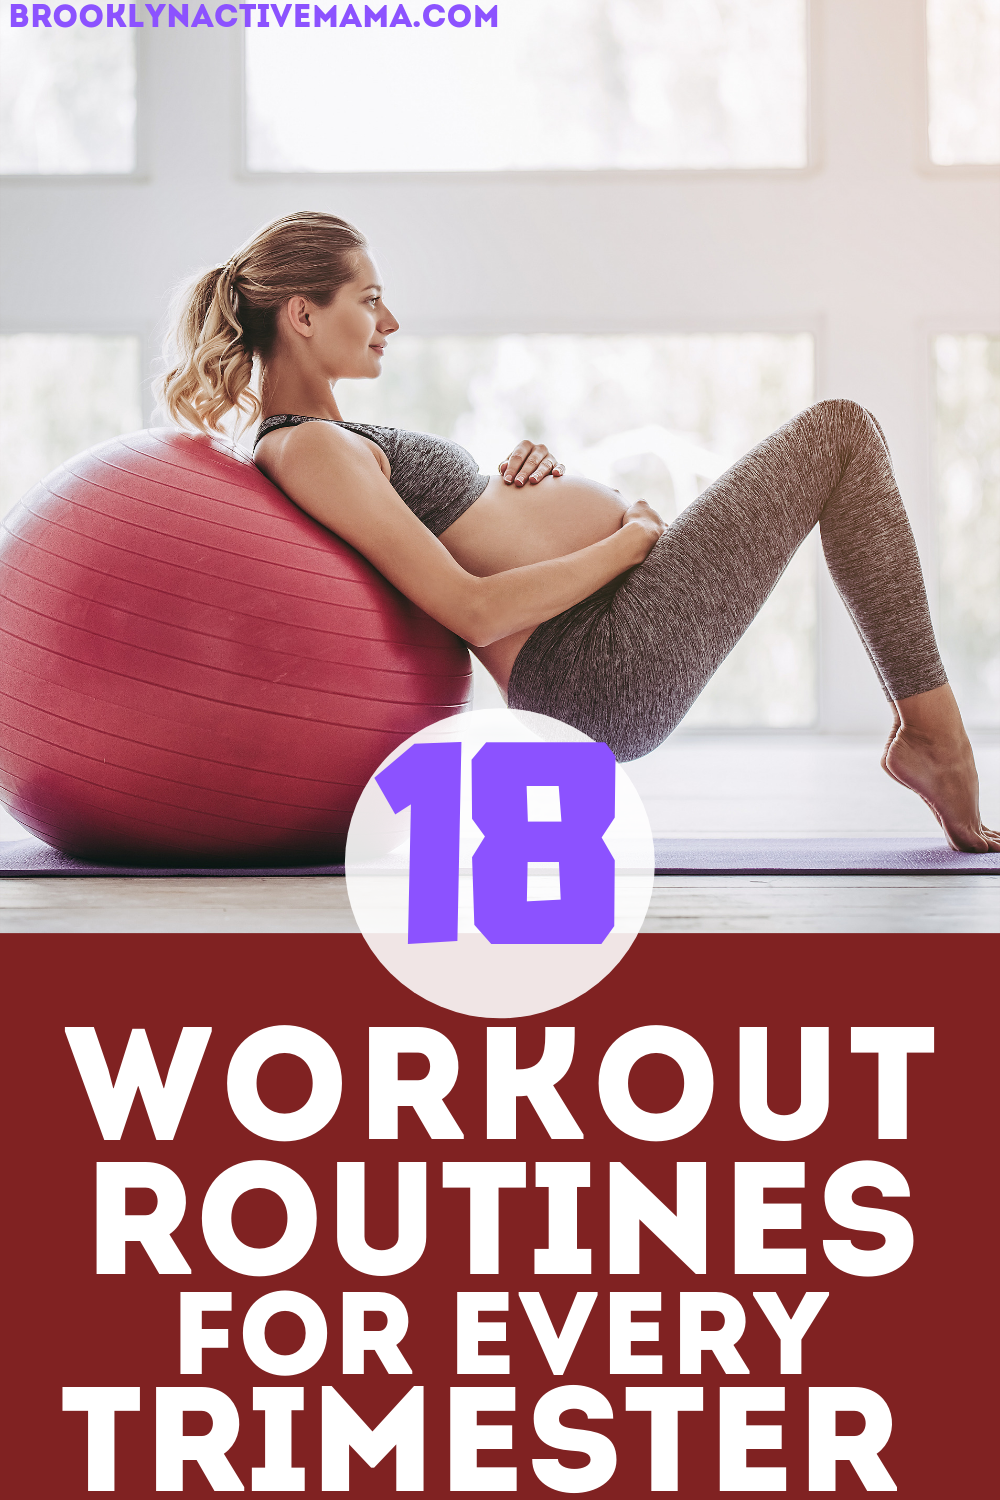 Not sure which exercises to do during pregnancy? Check out these 18 workouts you can do during each trimester!